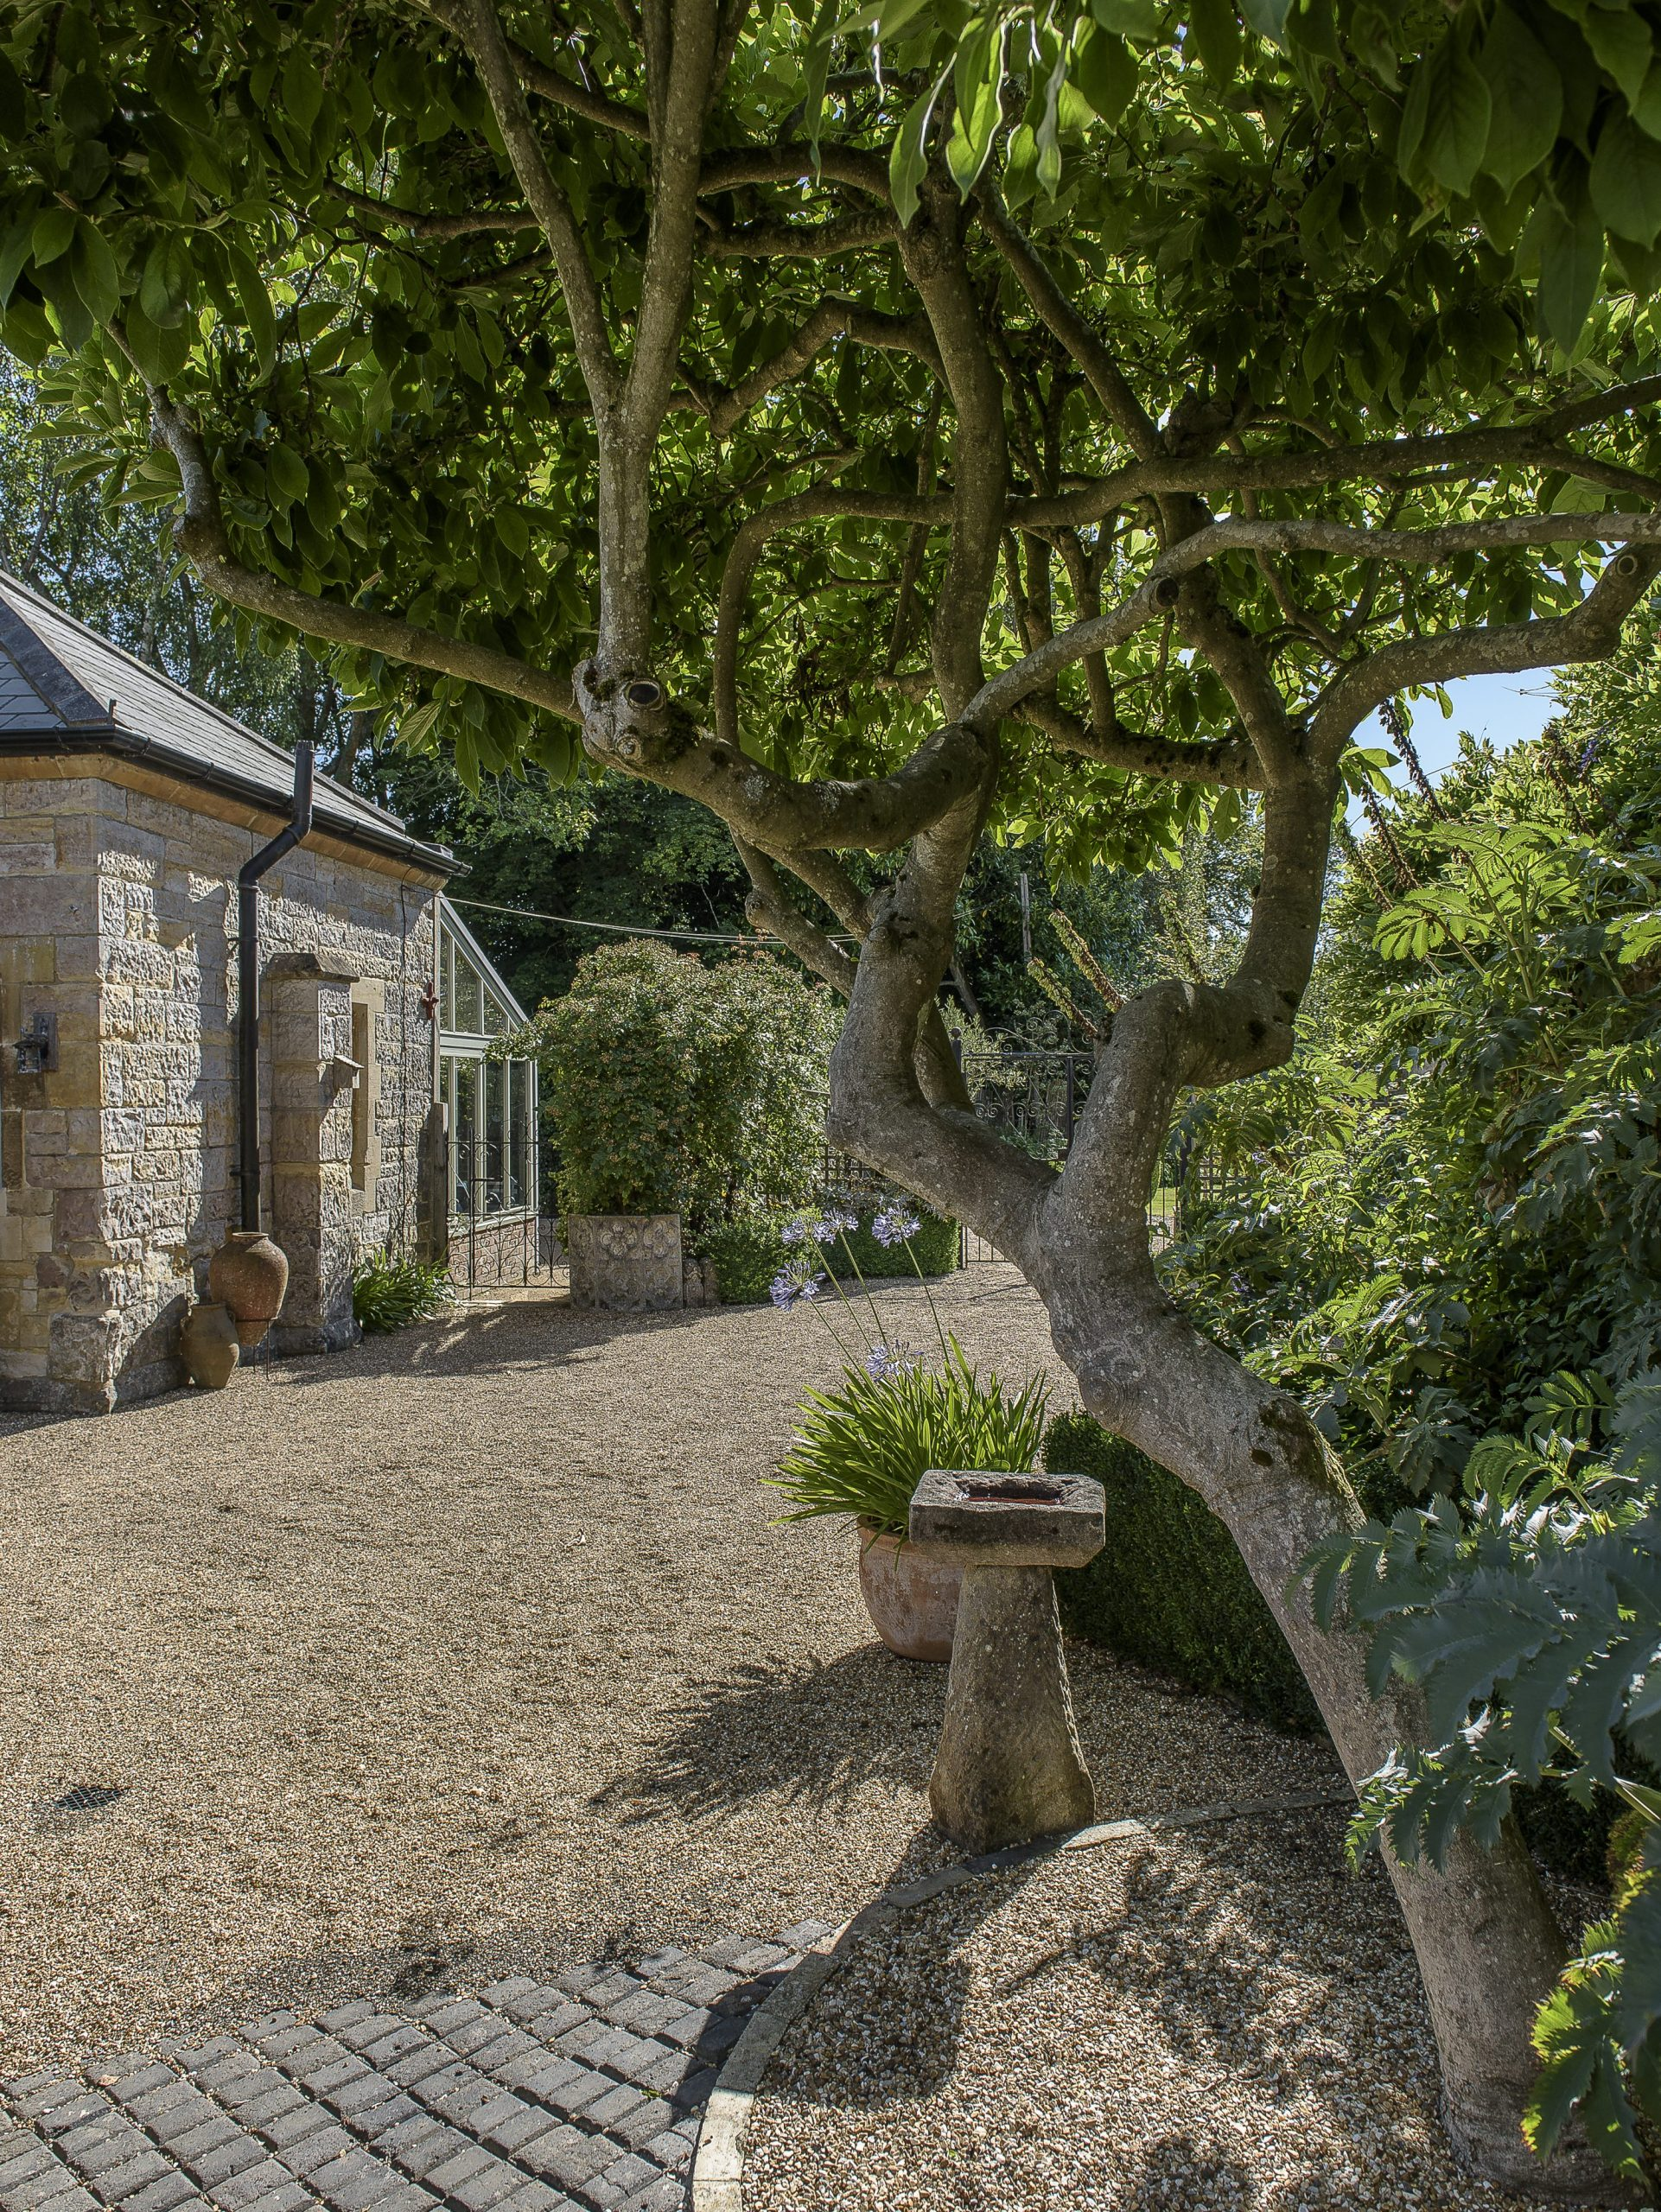 The couple have been opening the stunning gardens to visitors for several years, with the bed and breakfast a new development in 2020